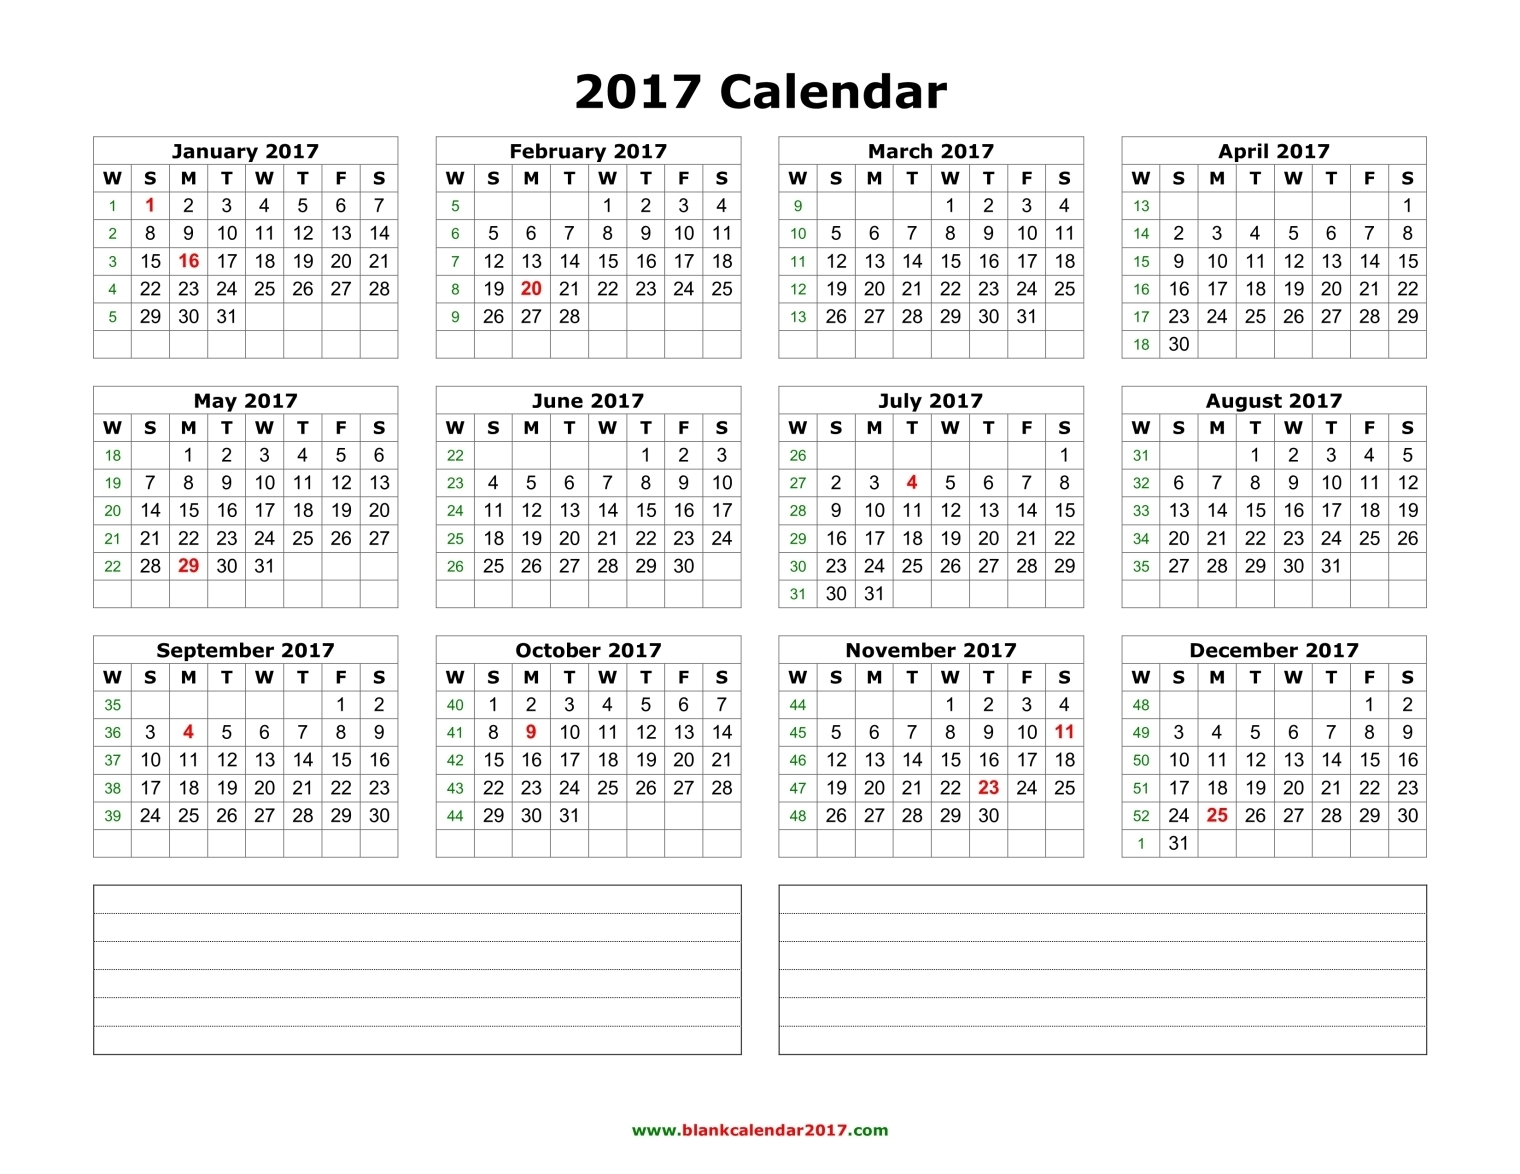 Blank Calendar 2017 : Calendar important templates of